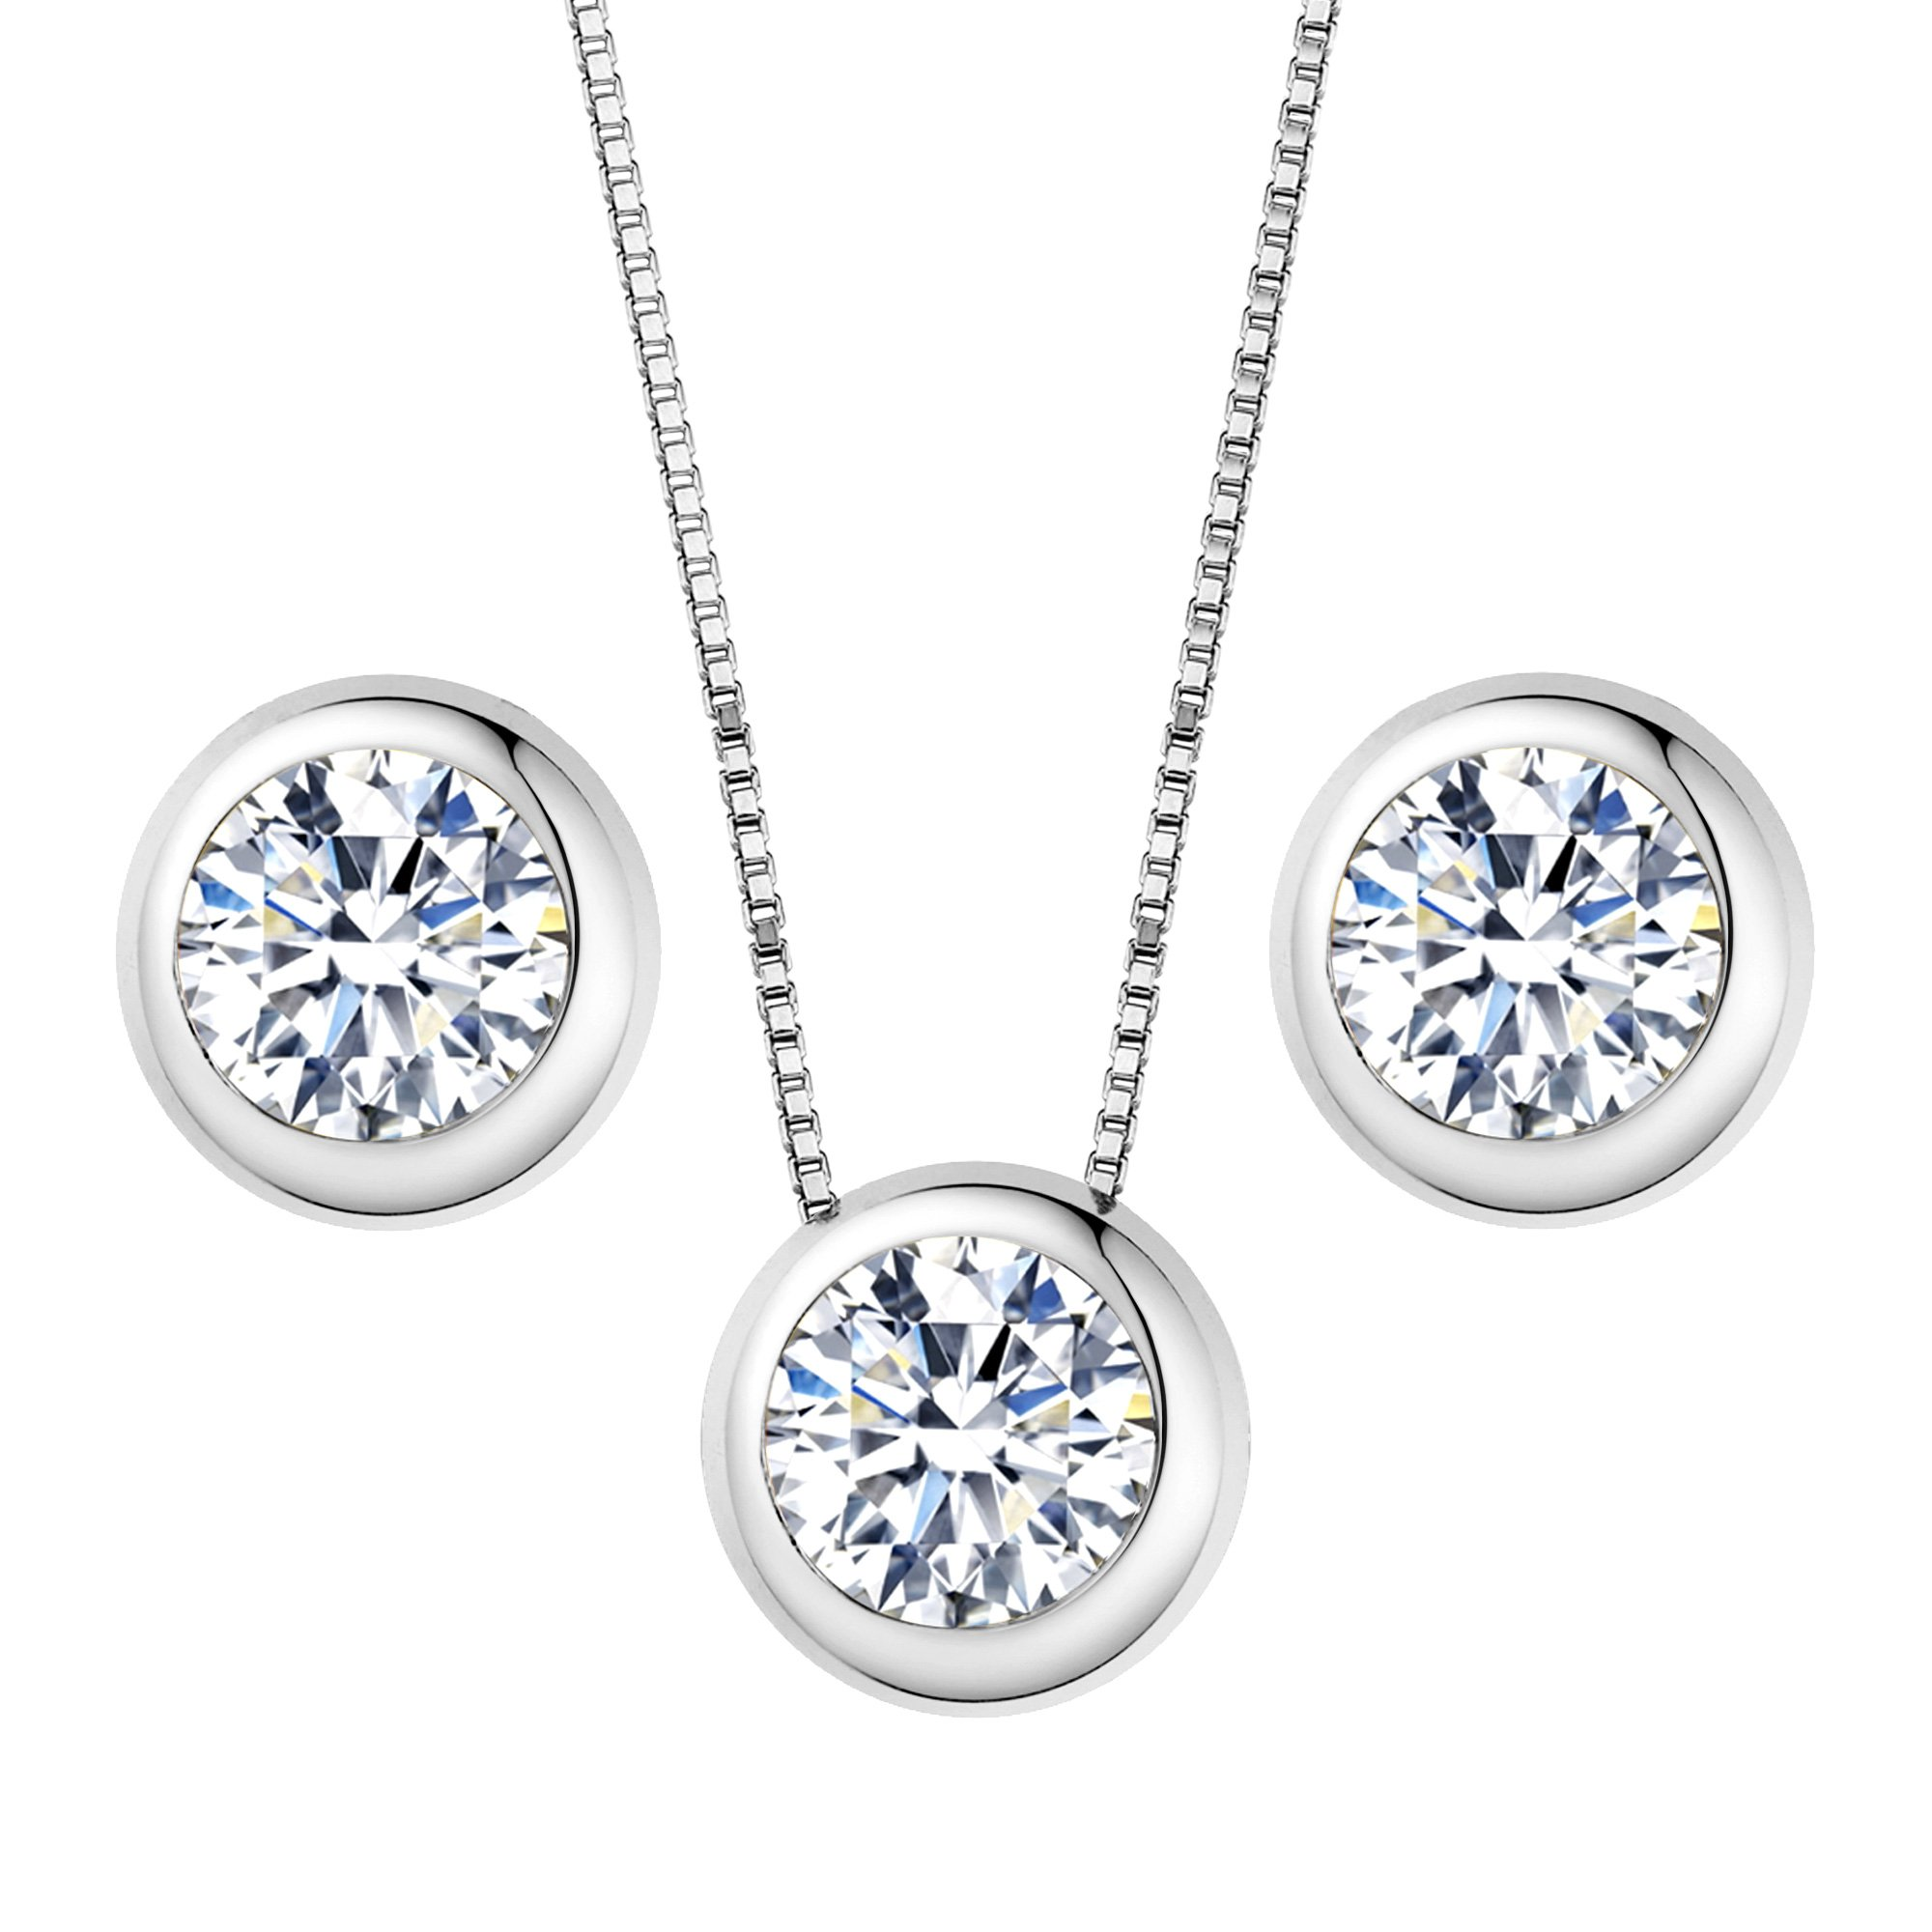 EleQueen 925 Sterling Silver 0.7 Carat Solitaire Round CZ Bridal Necklace Earrings Jewelry Set